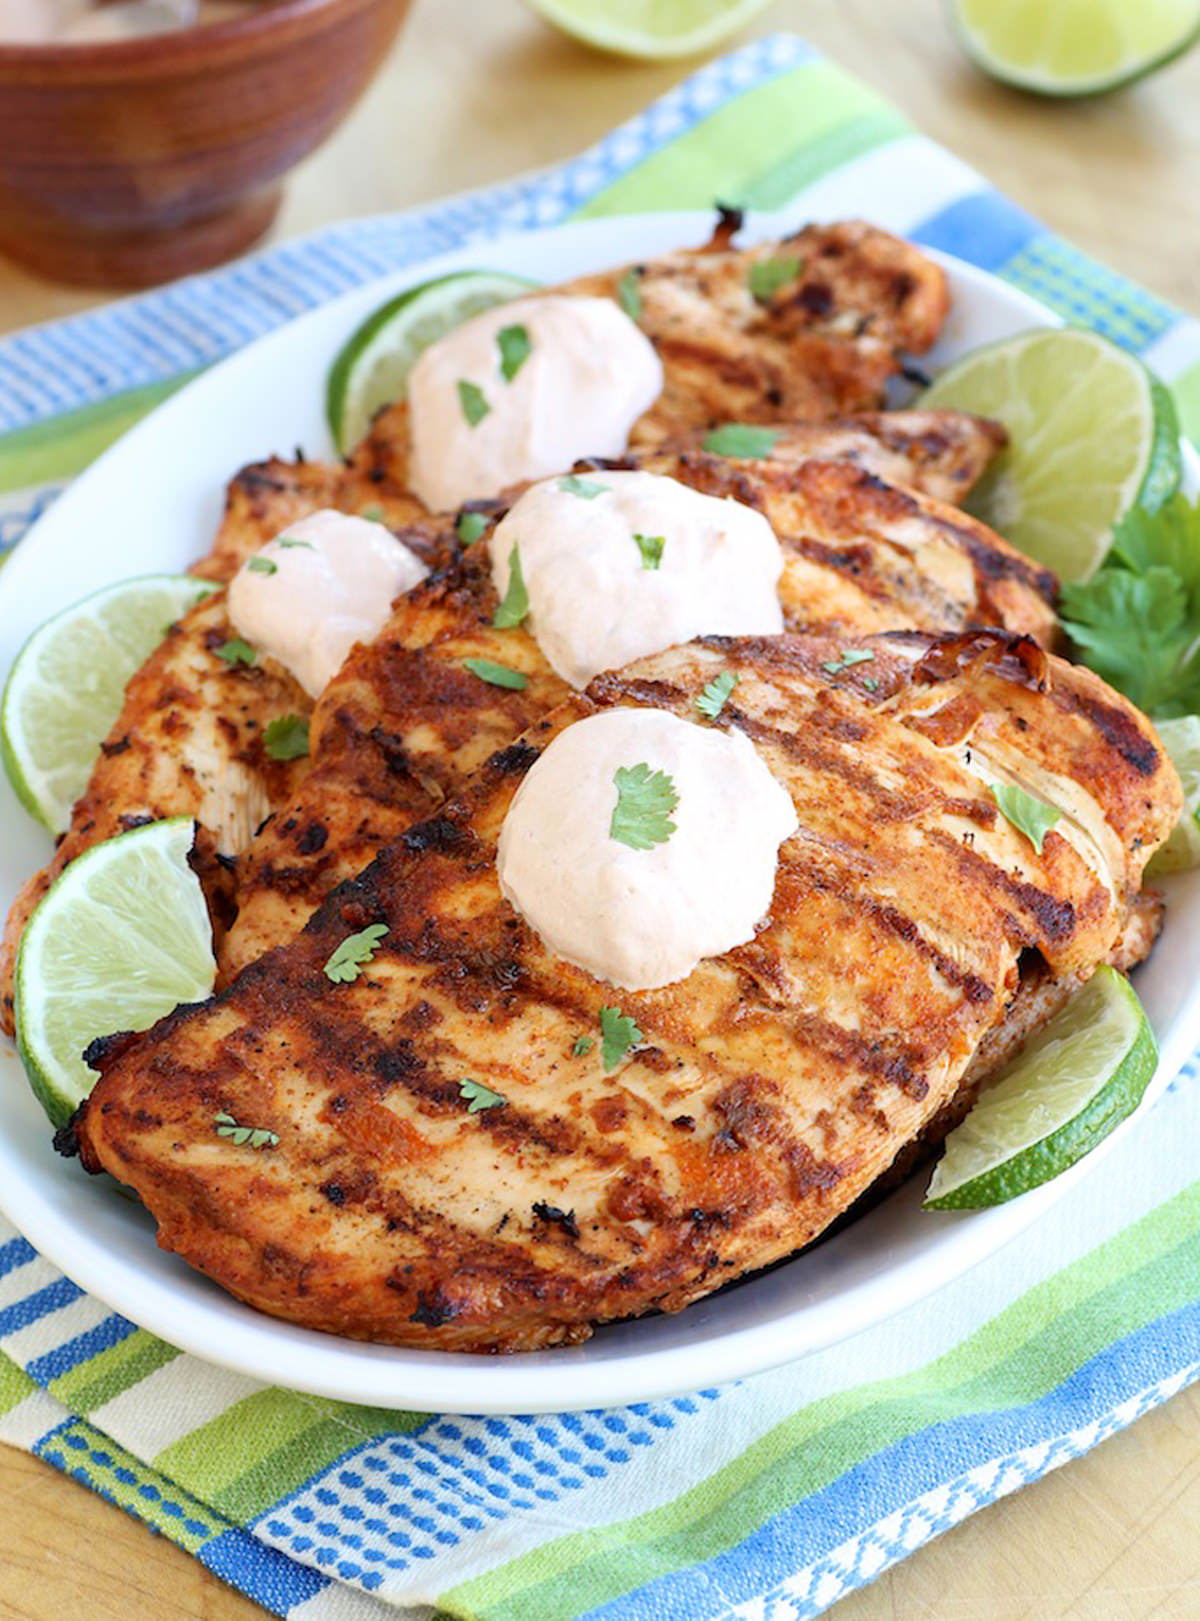 Chili-Lime-Chicken